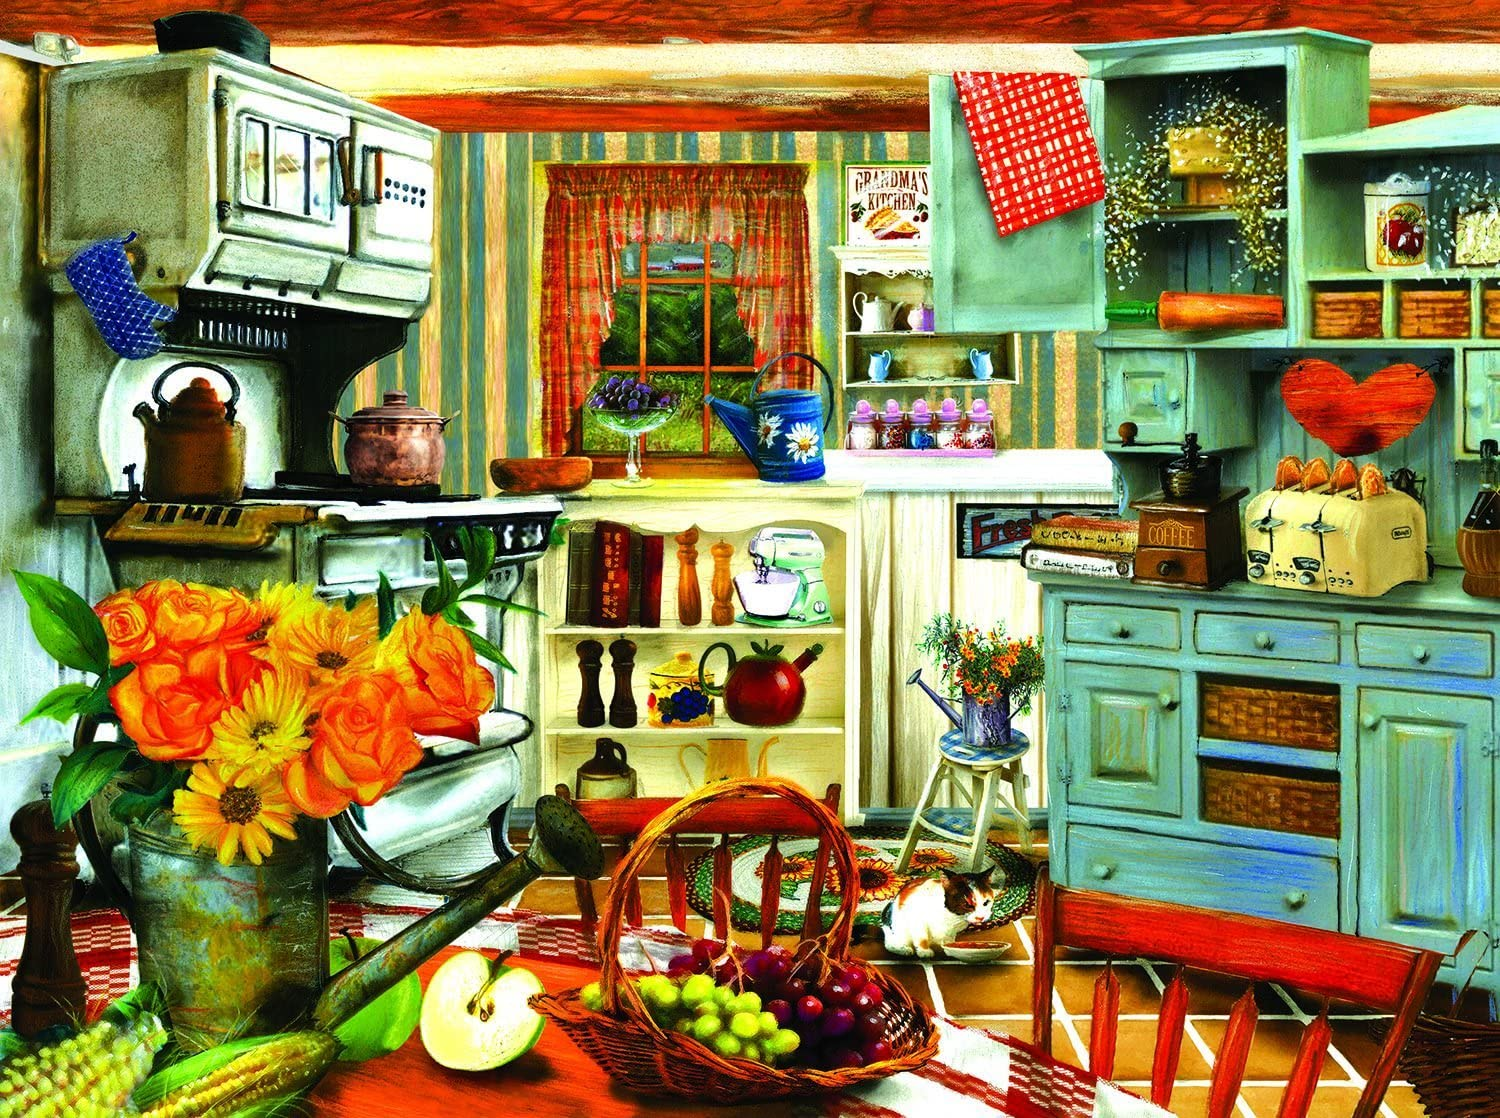 Grandma's Country Kitchen 1000 pc Jigsaw Puzzle by SunsOut